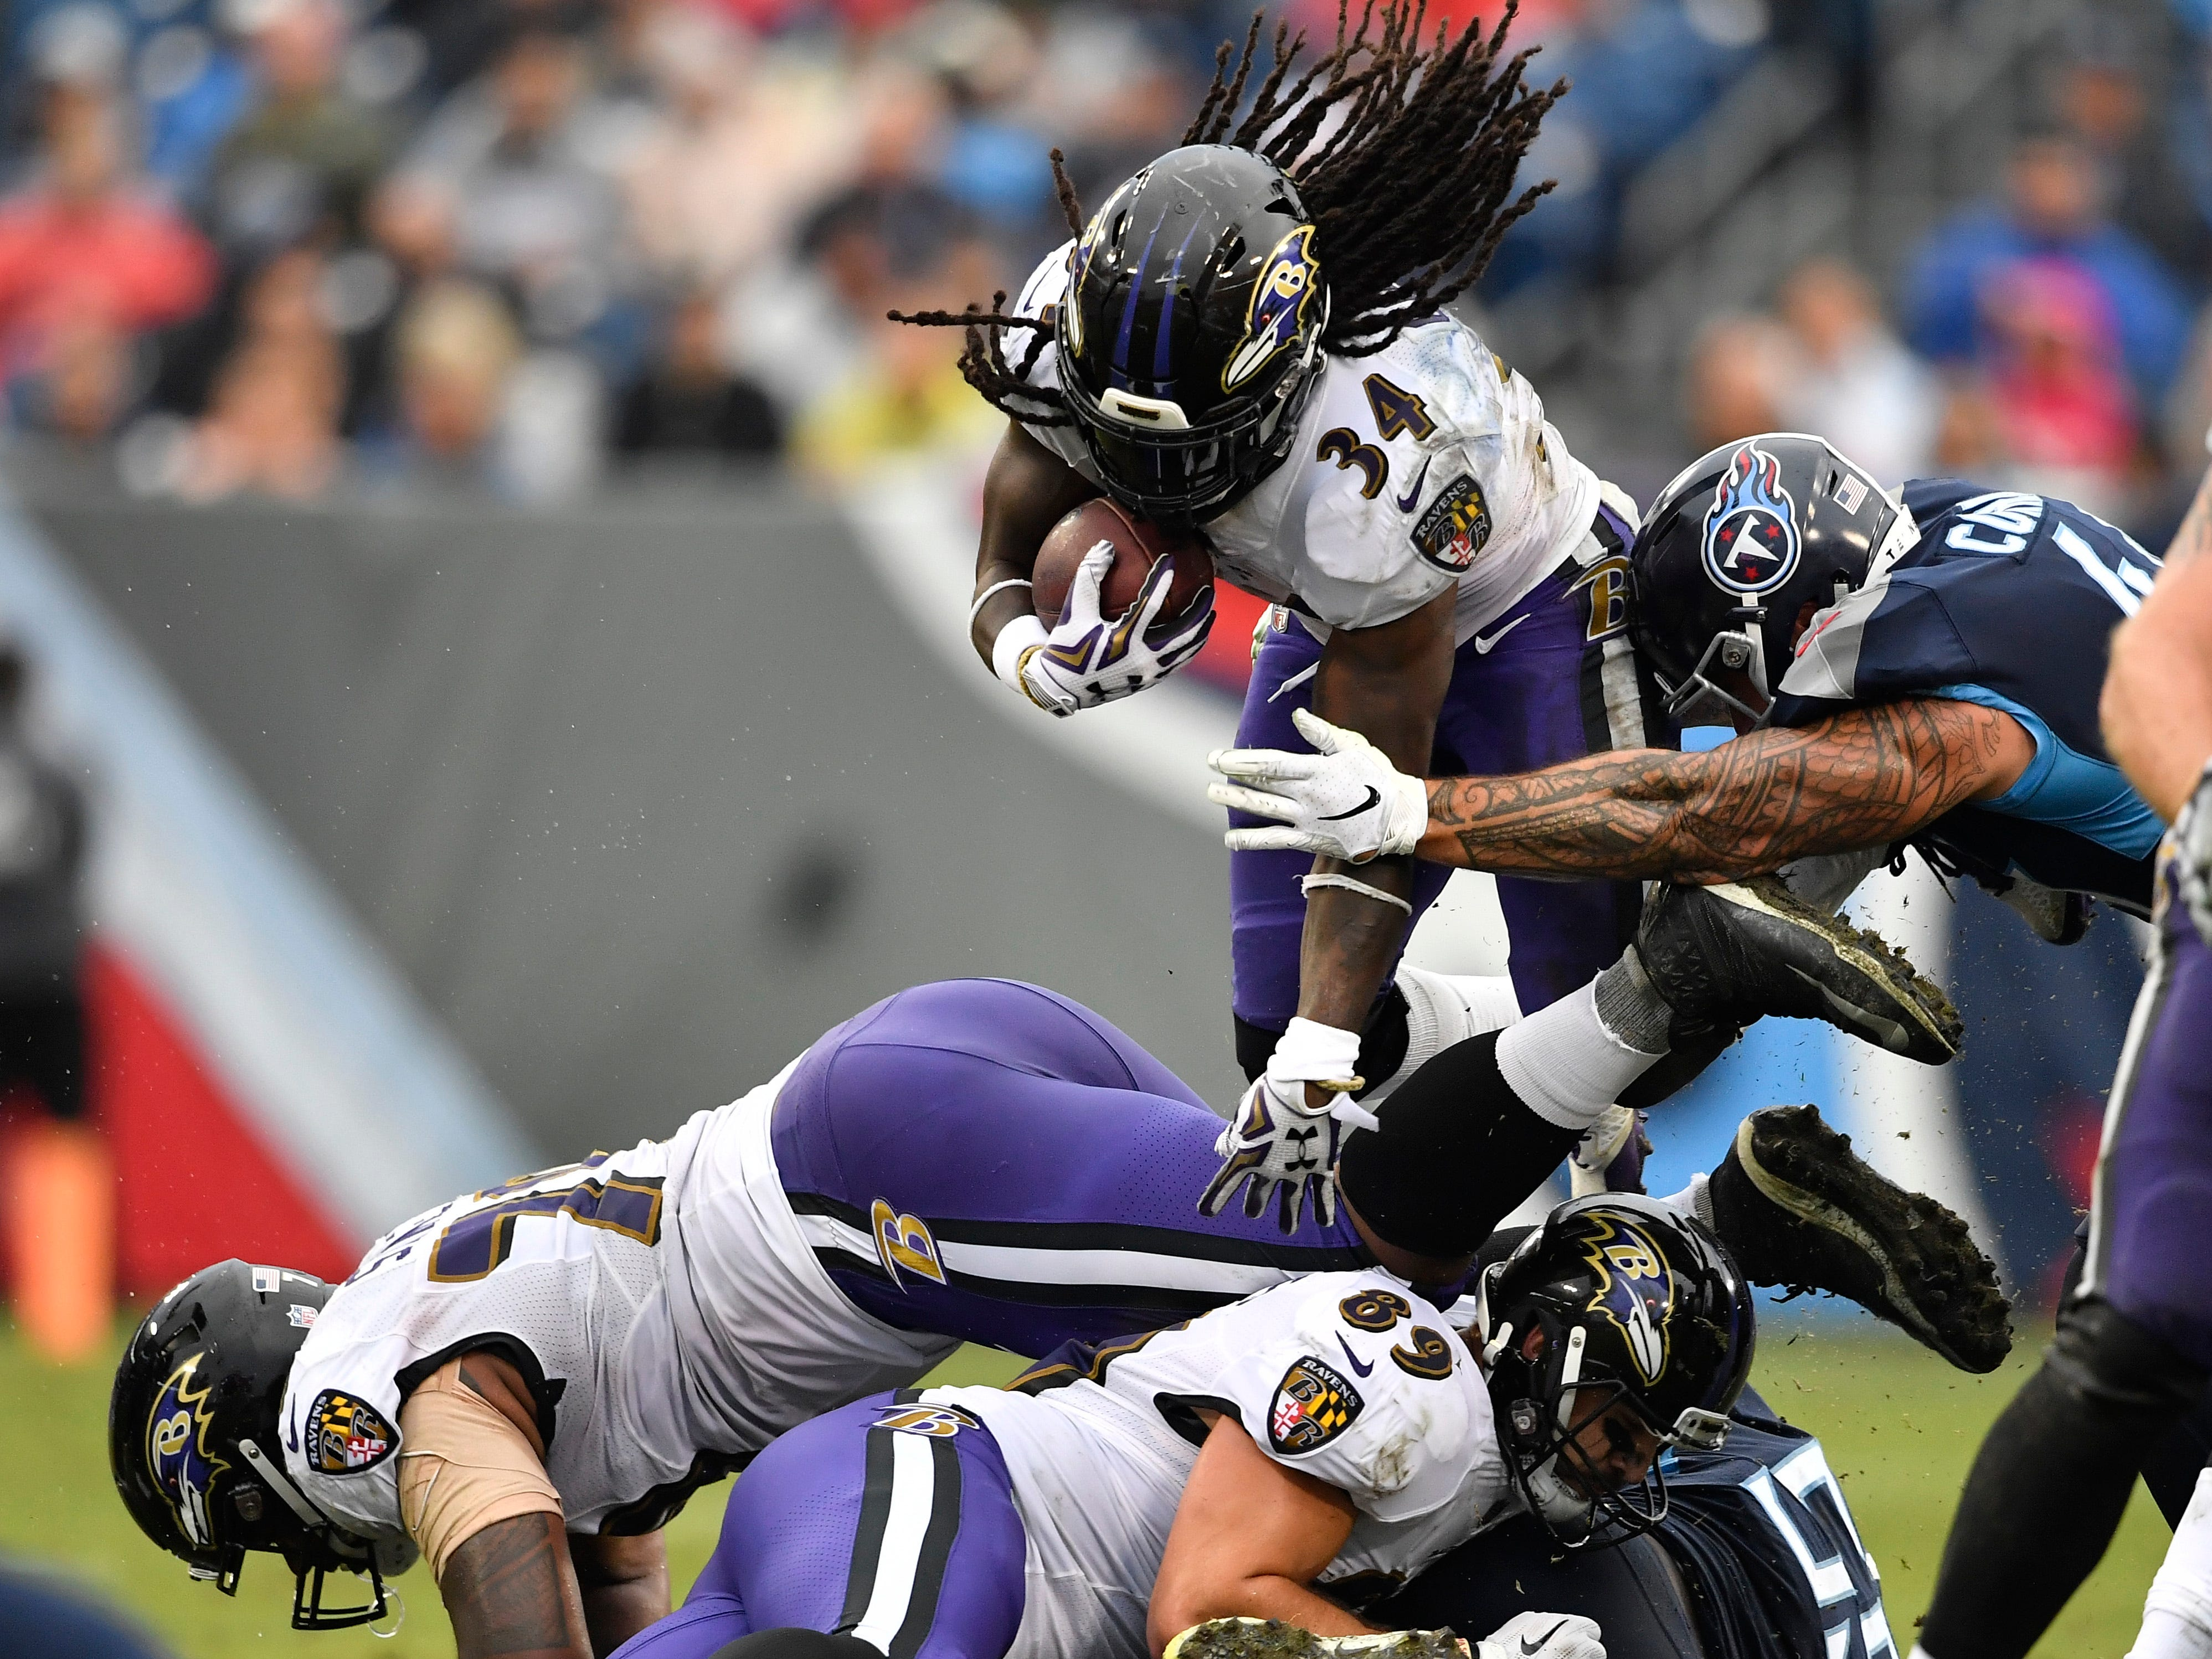 Ravens running back Alex Collins (34) leaps over Titans defenders in the third quarter at Nissan Stadium Sunday, Oct. 14, 2018, in Nashville, Tenn.